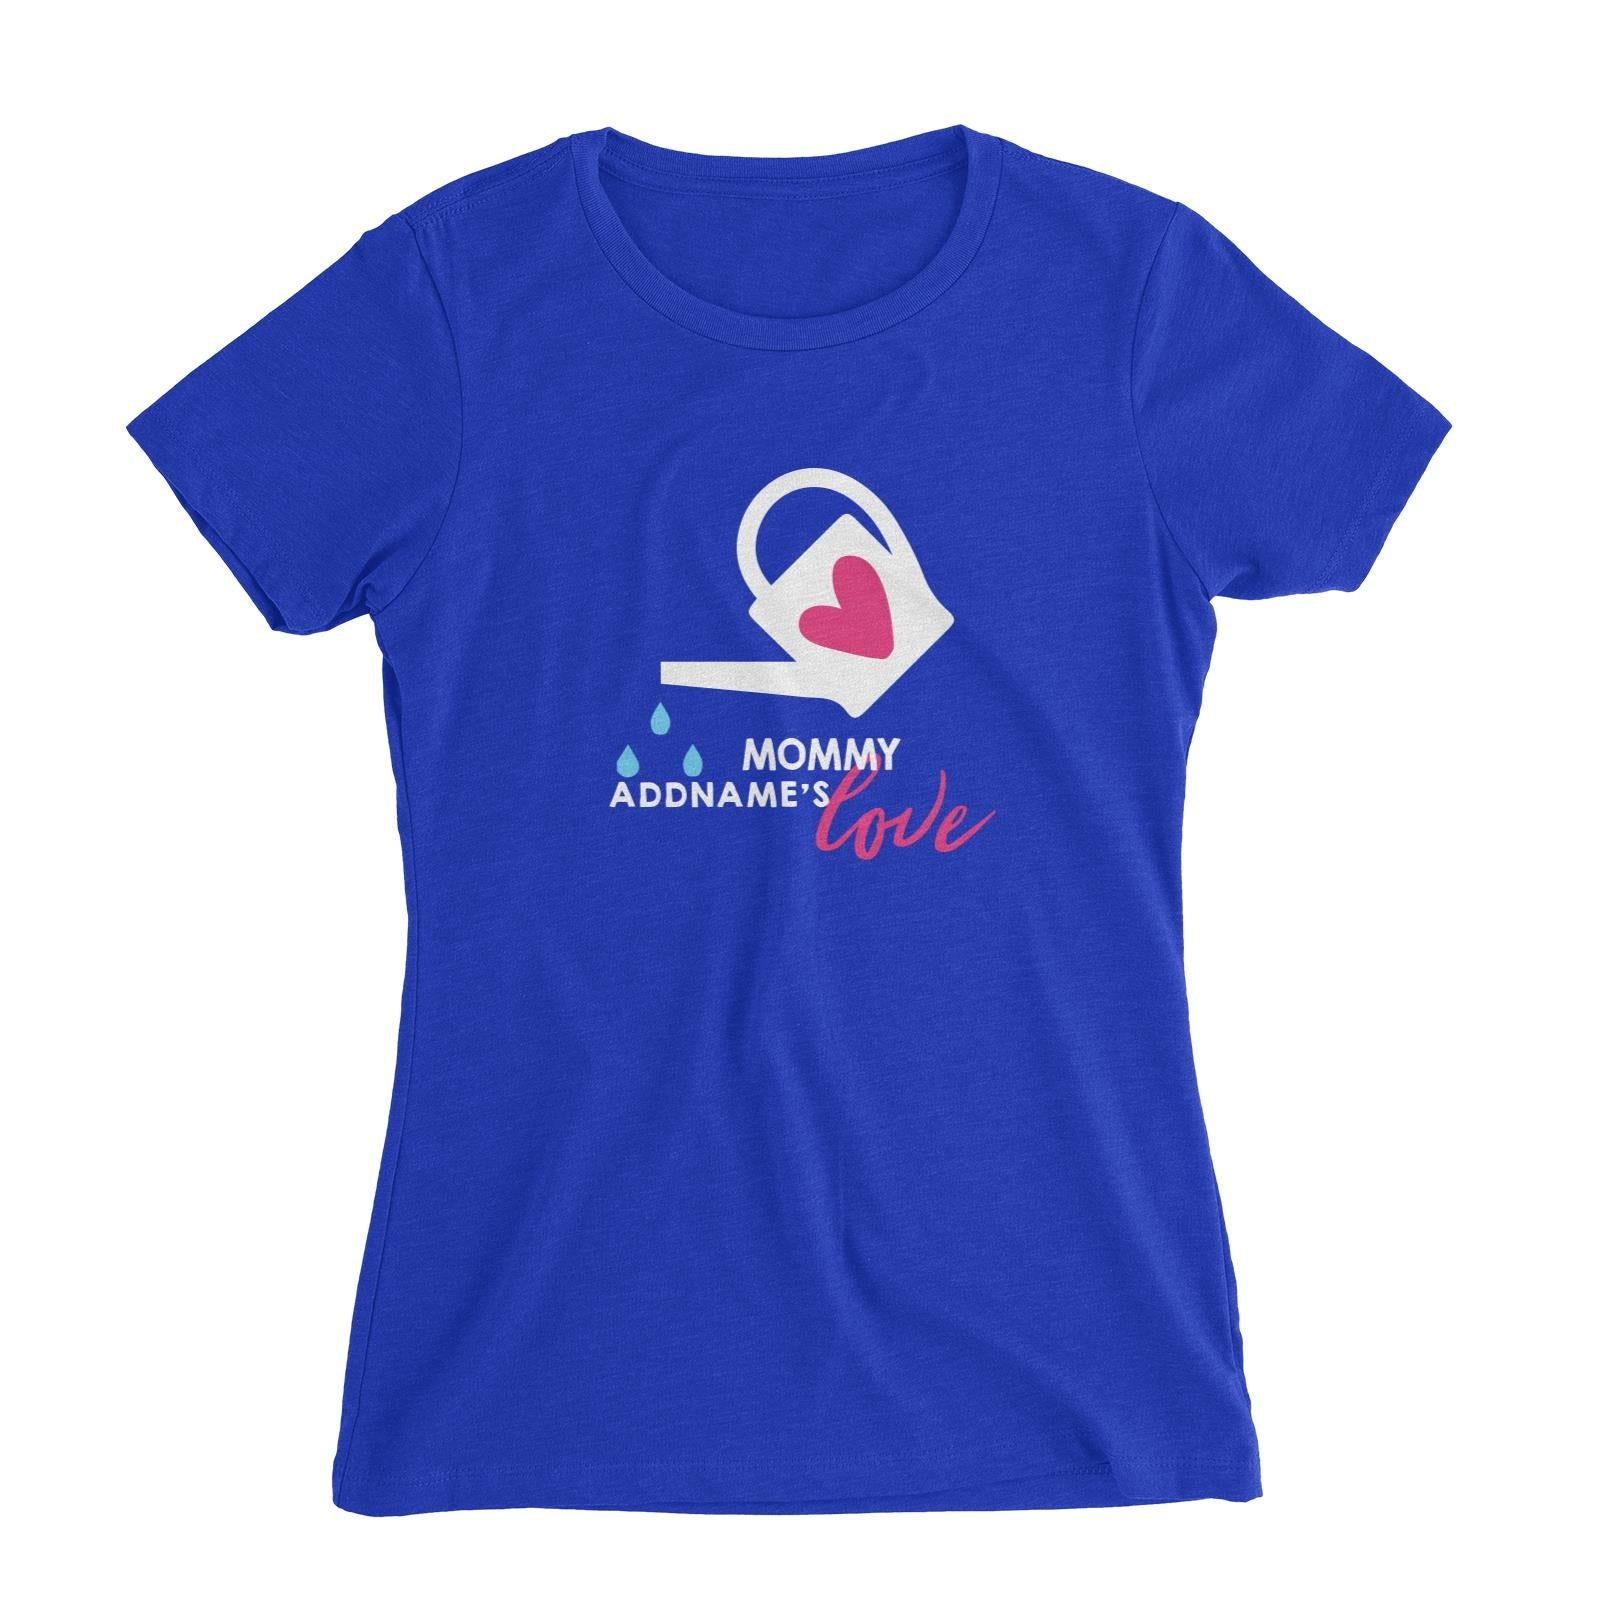 Nurturing Mommy's Love Addname Women's Slim Fit T-Shirt  Matching Family Personalizable Designs